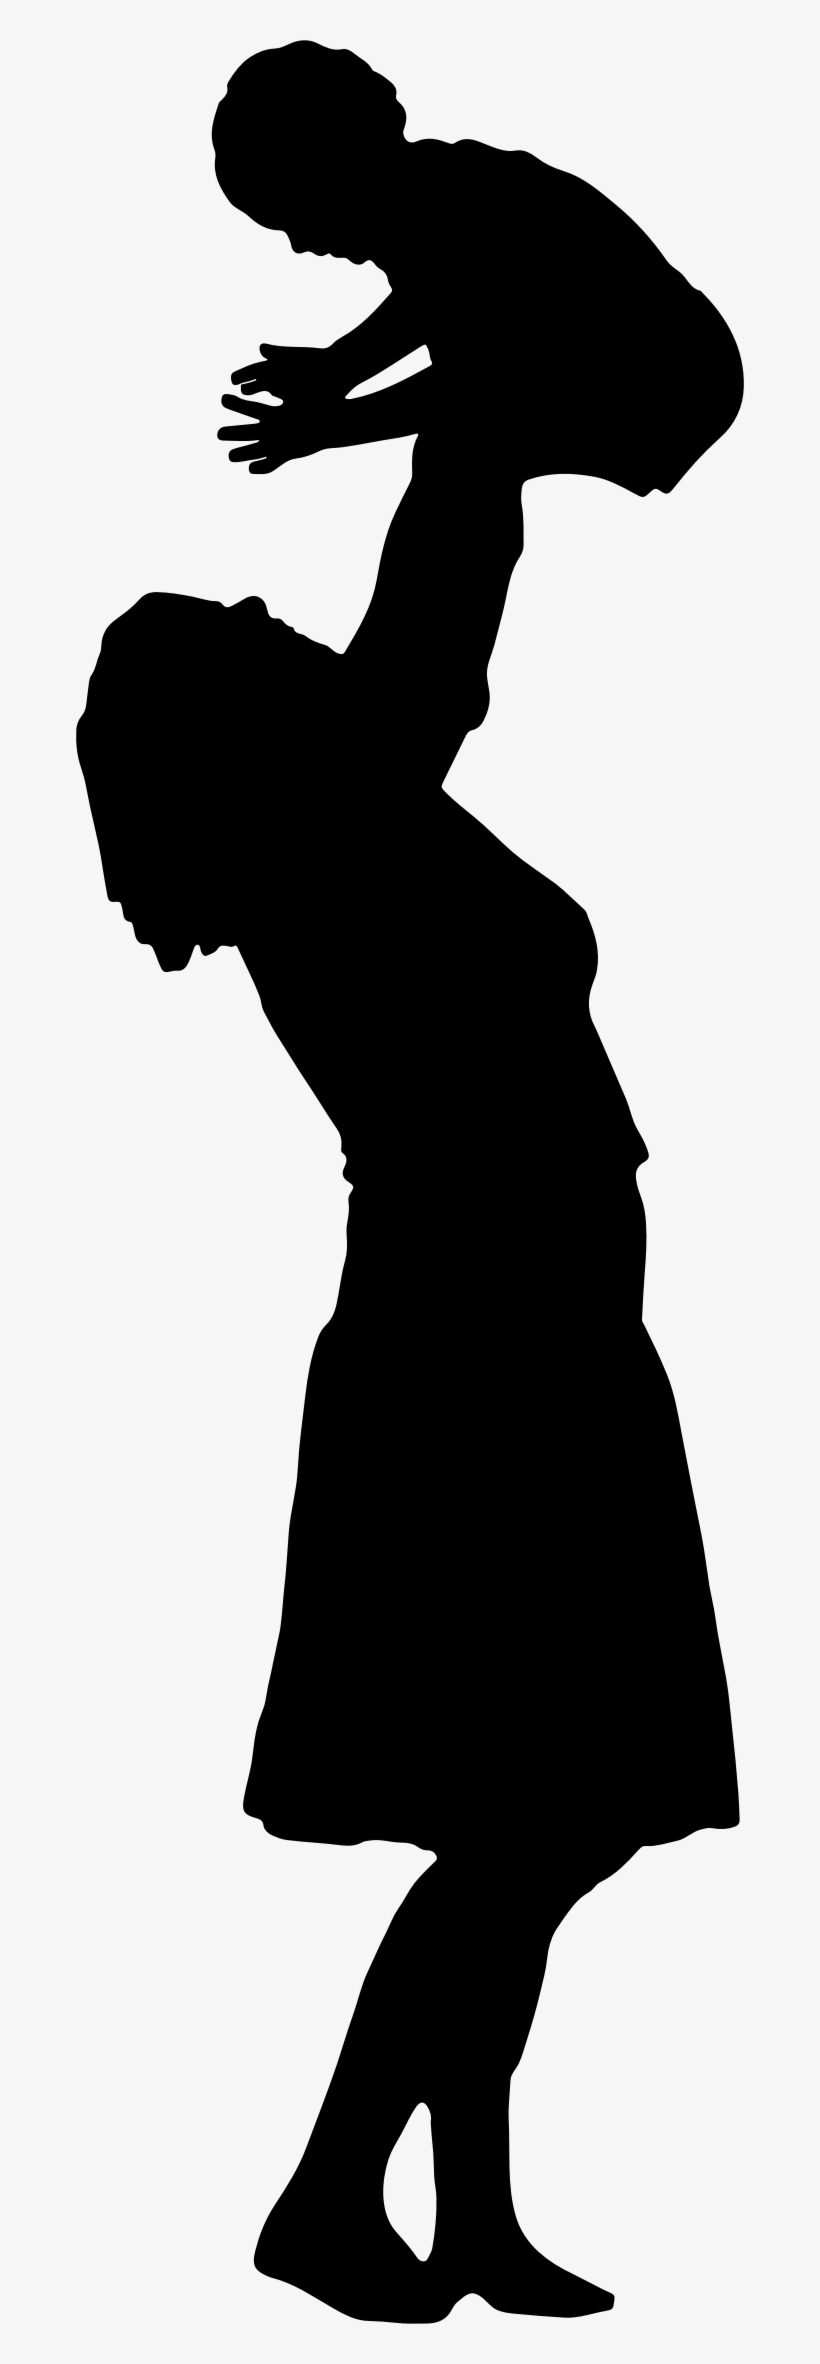 Of Mother And Child At Getdrawings Com - Mom And Baby Silhouette Png, transparent png #427593